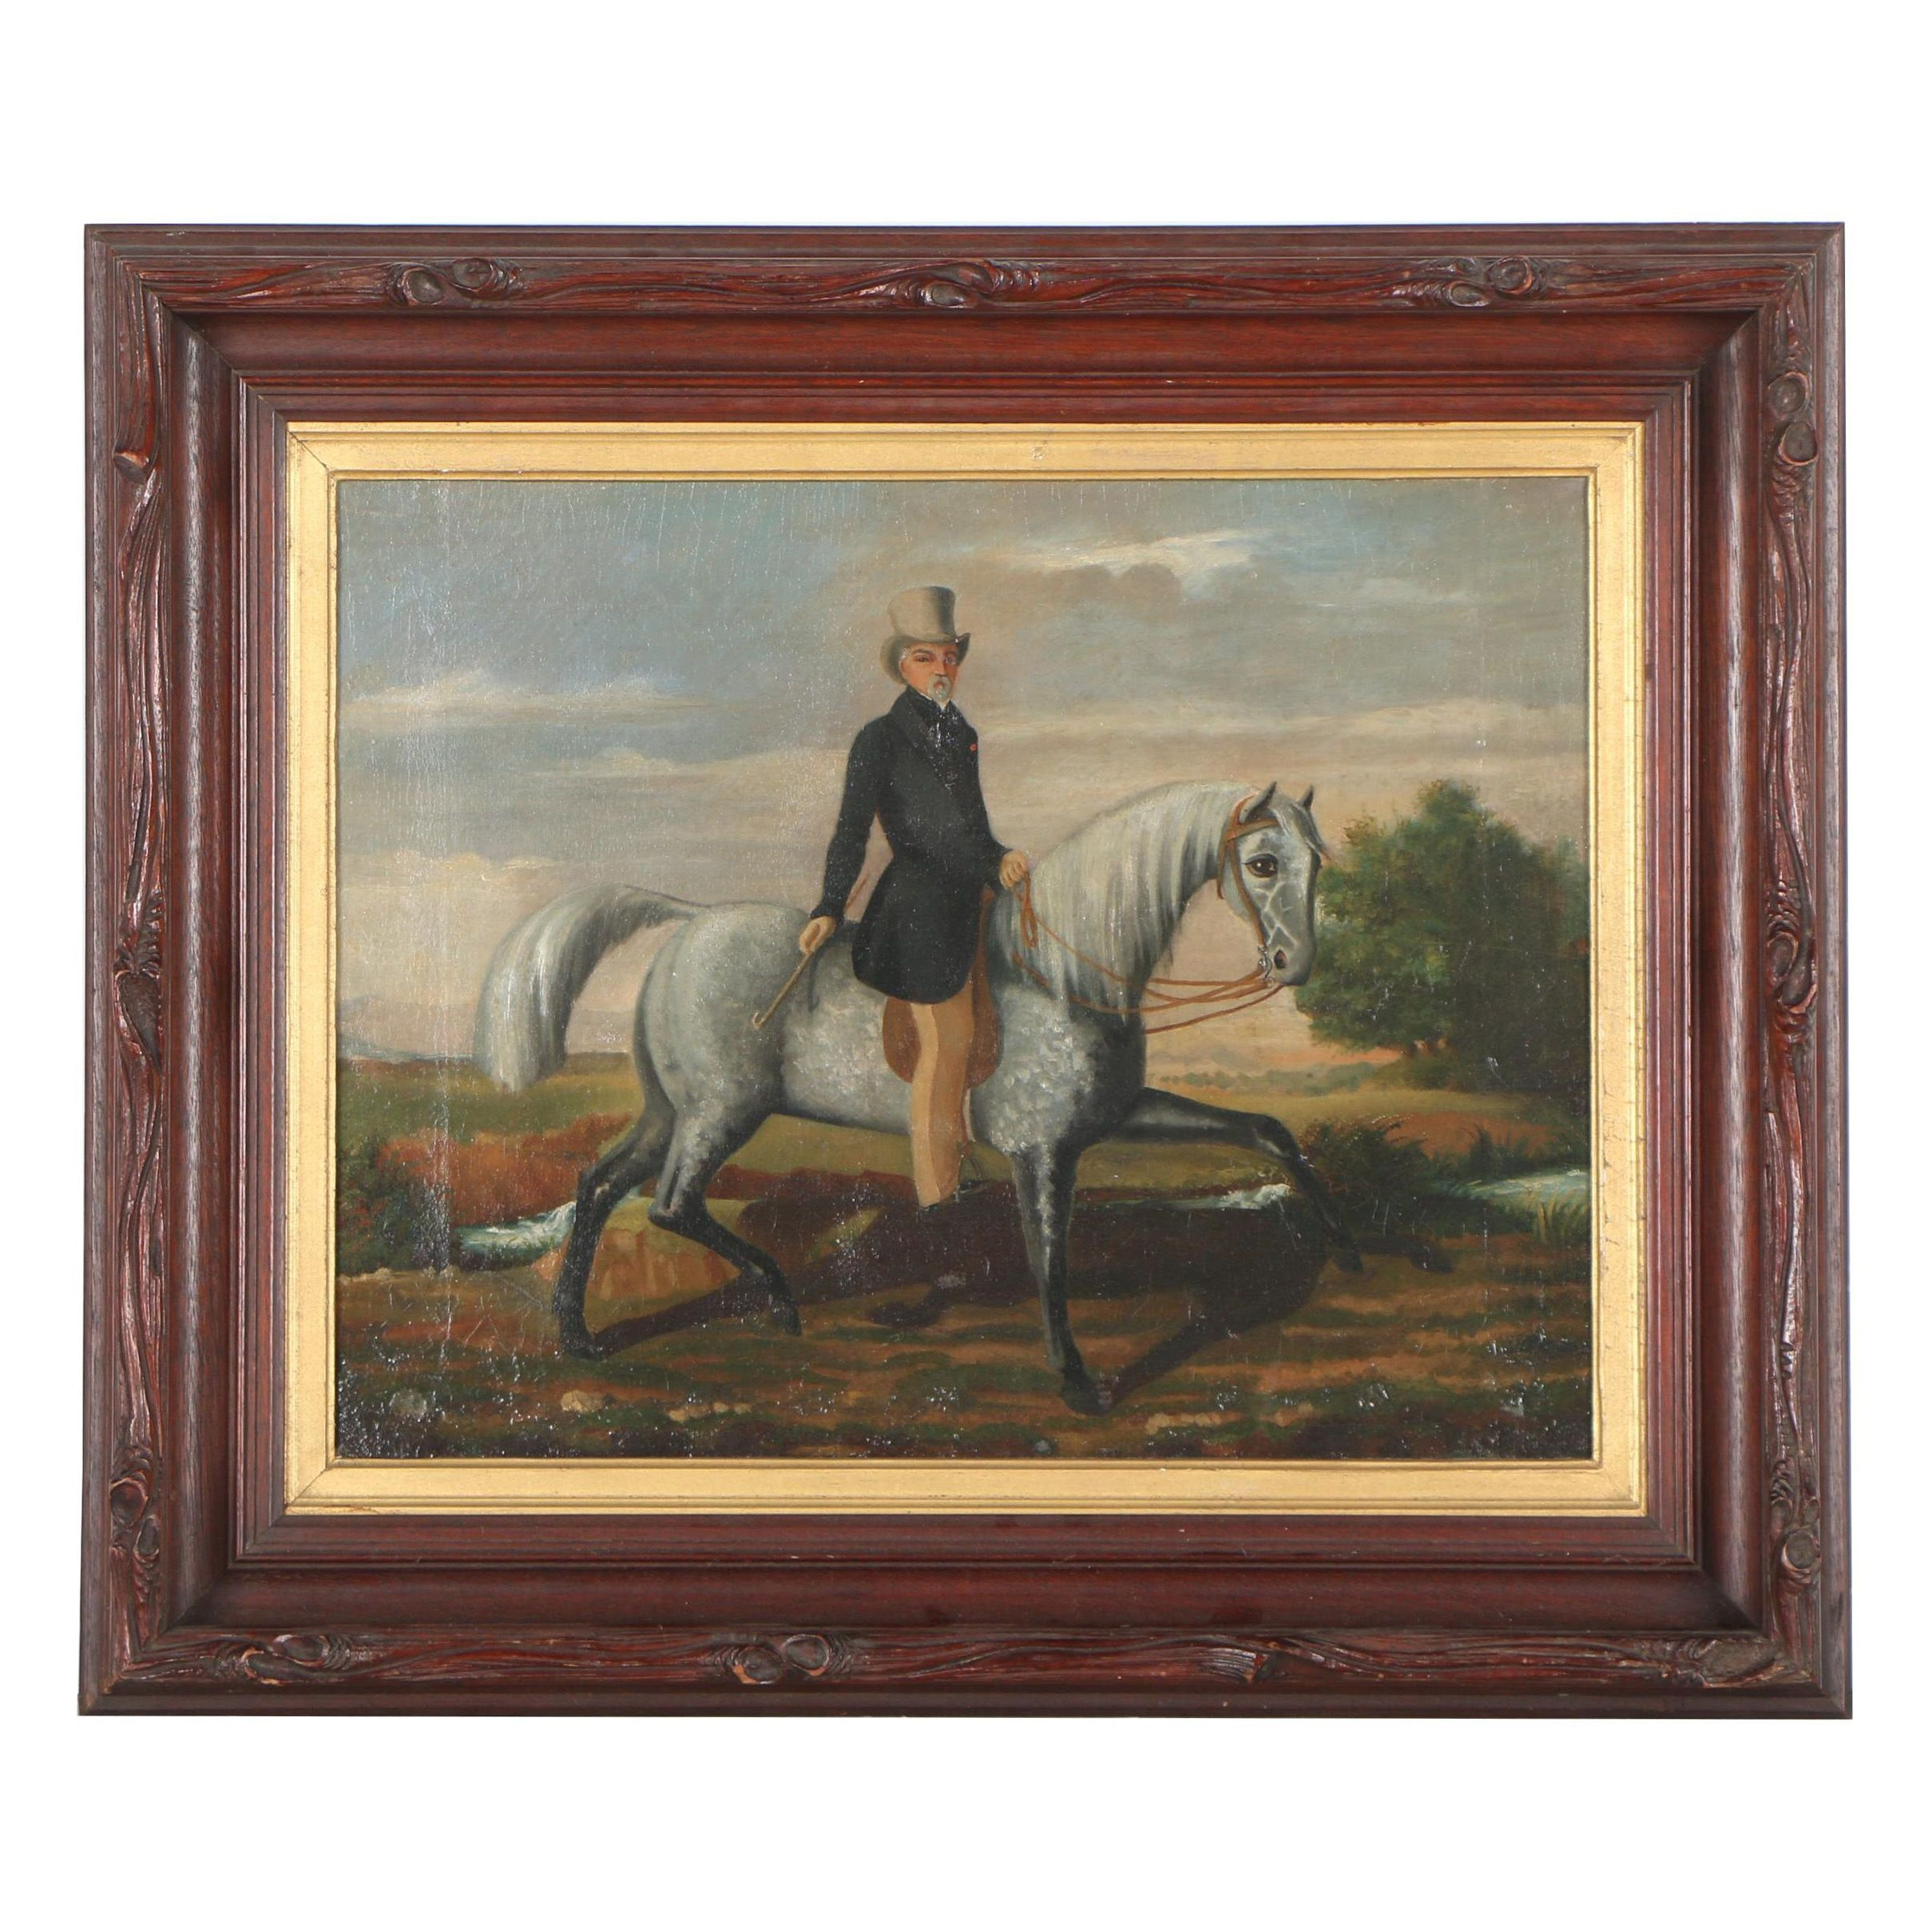 Mid 19th Century American School Oil Painting of Gentleman on Horseback